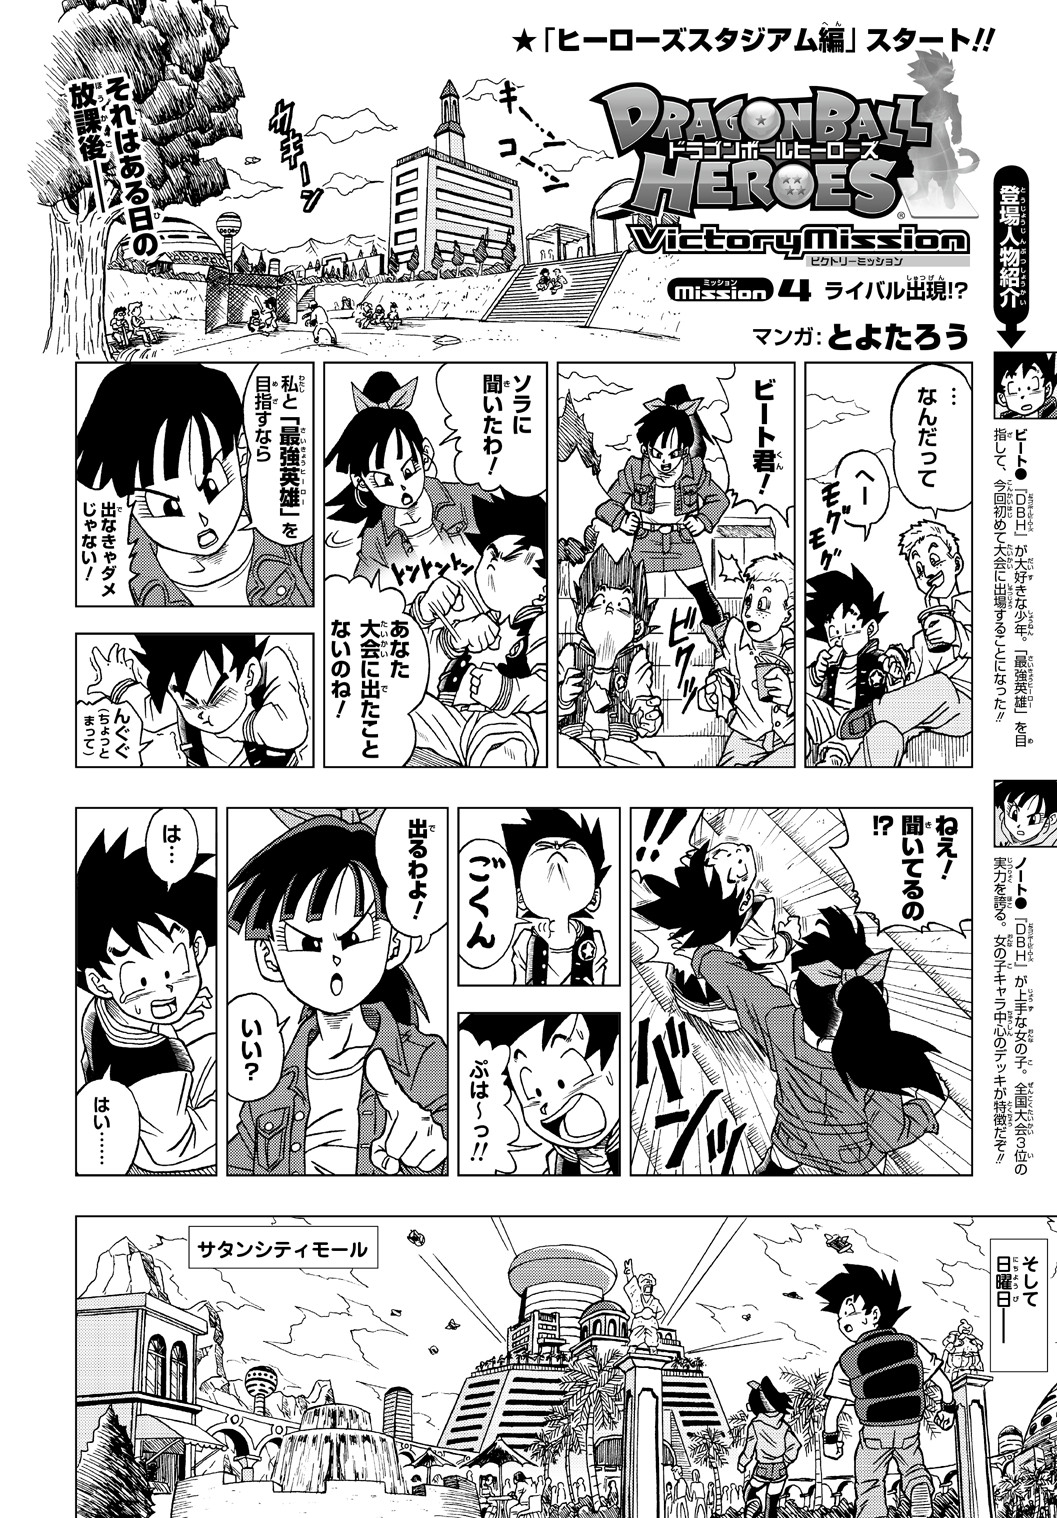 Dragon Ball Heroes Victory Mission Chapitre 004